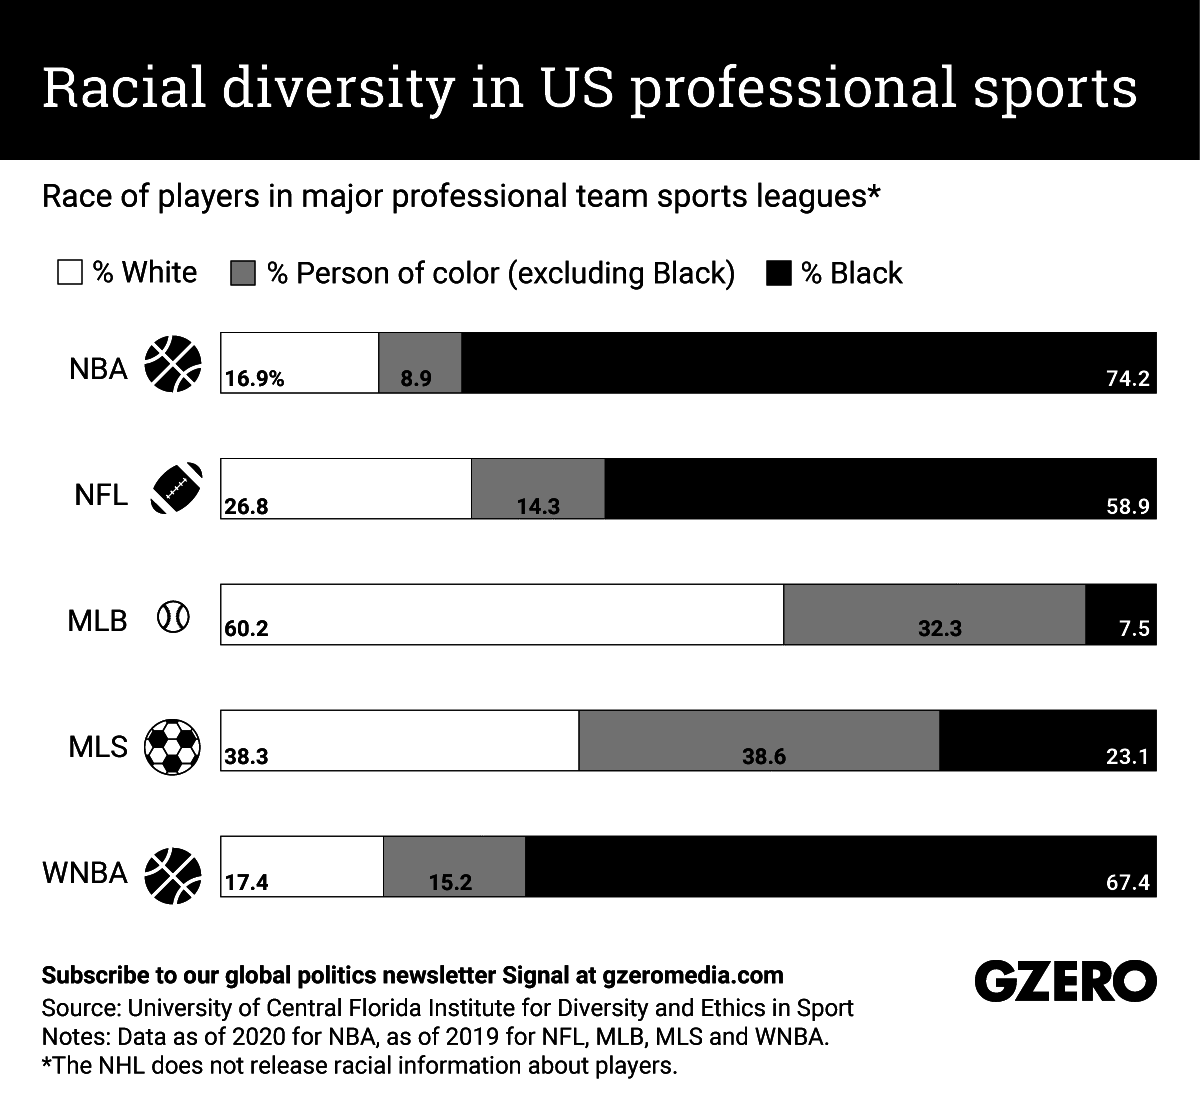 The Graphic Truth: Racial diversity in US professional sports